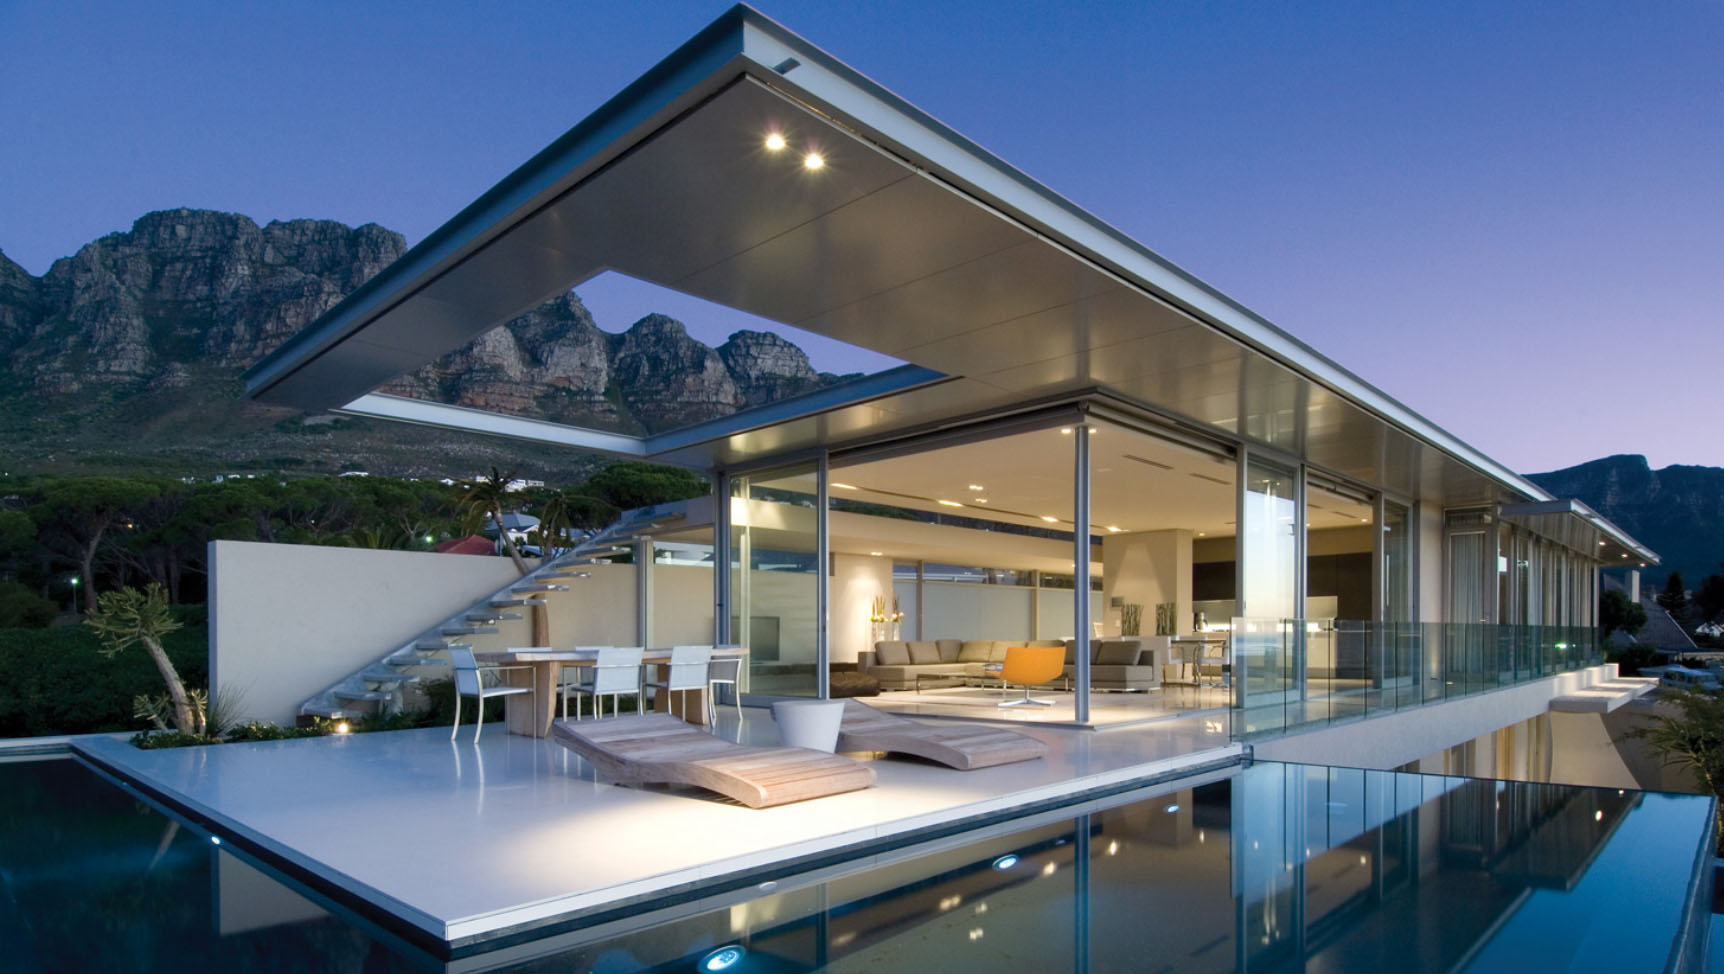 Minimalist Residential Architecture minimalist ocean view home in south africa | idesignarch